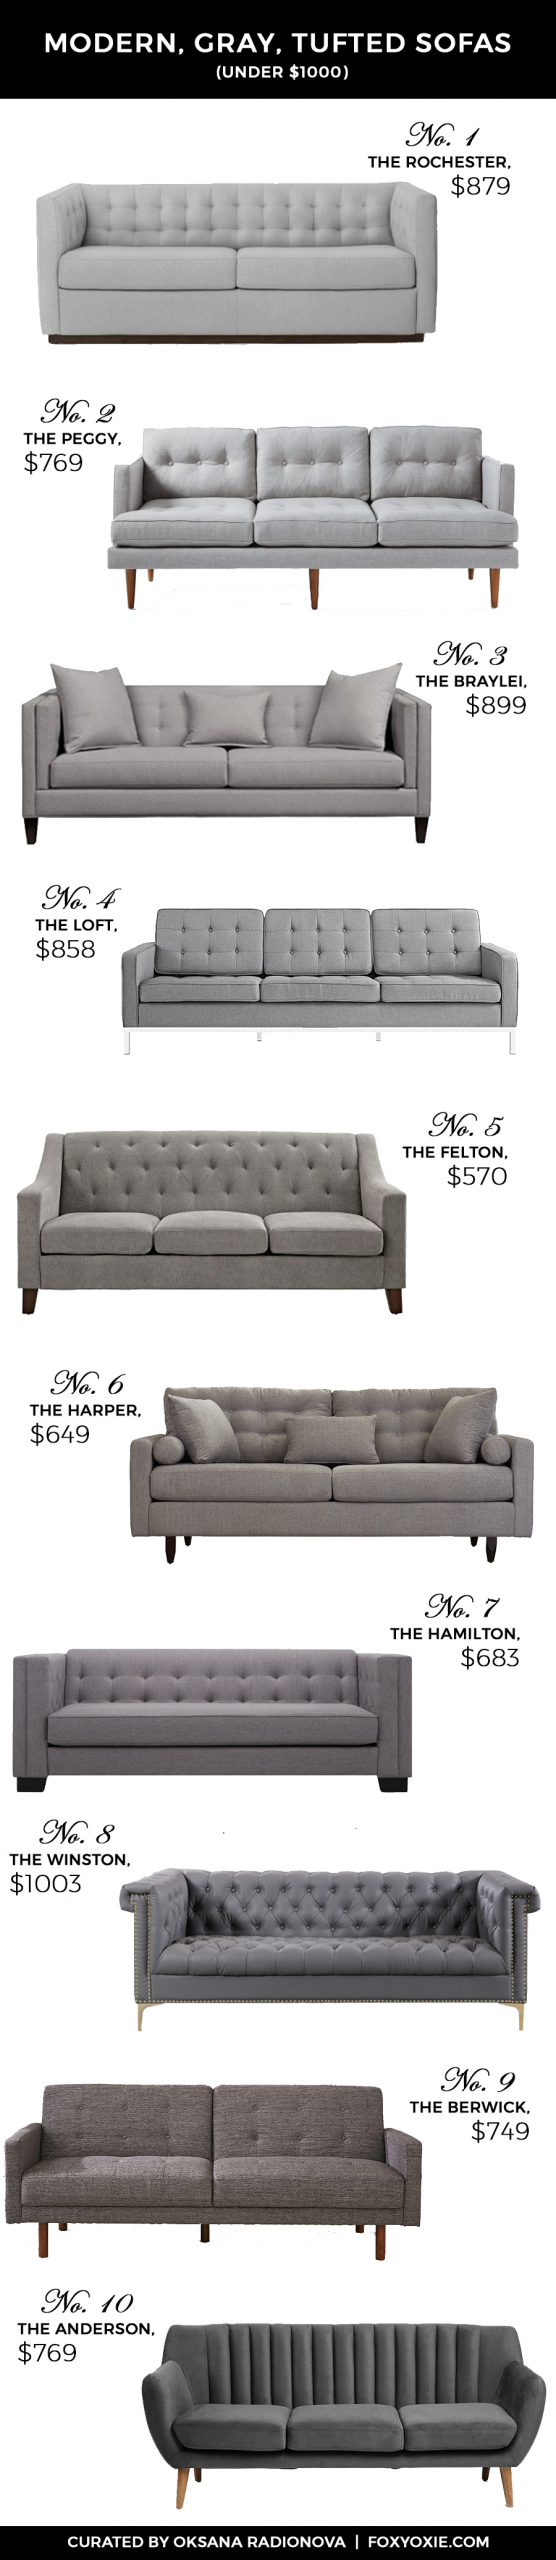 gray-tufted-sofa-for-under-1000